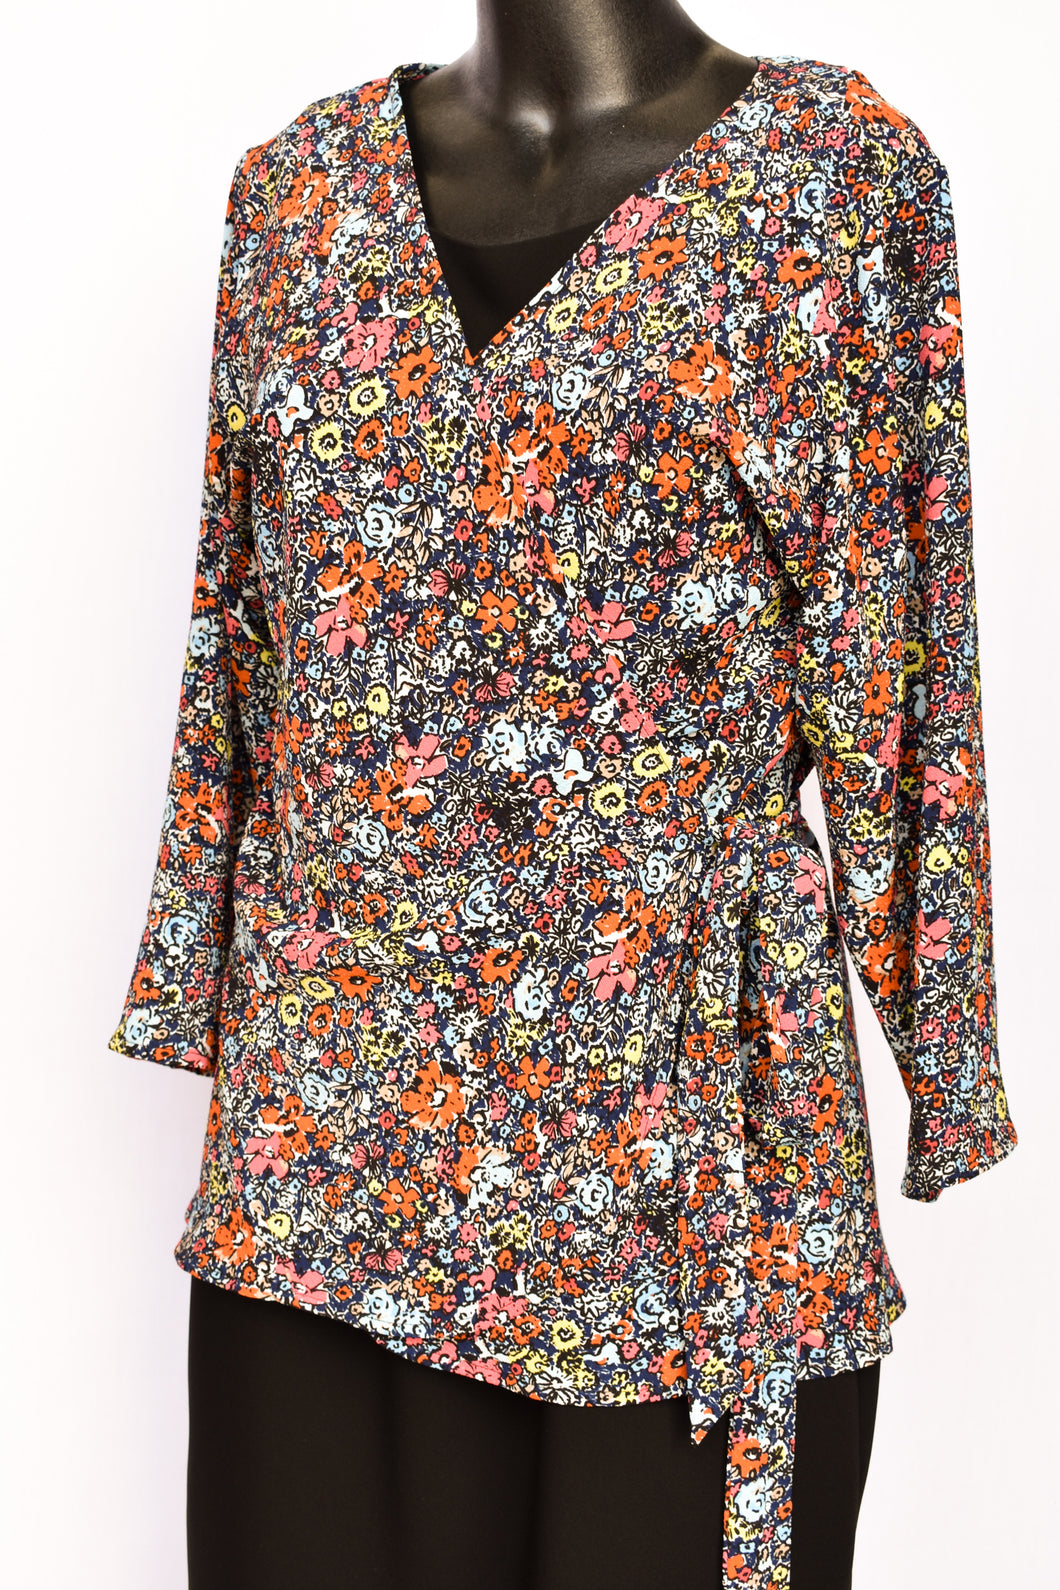 Carly Harris wrap top, size 1